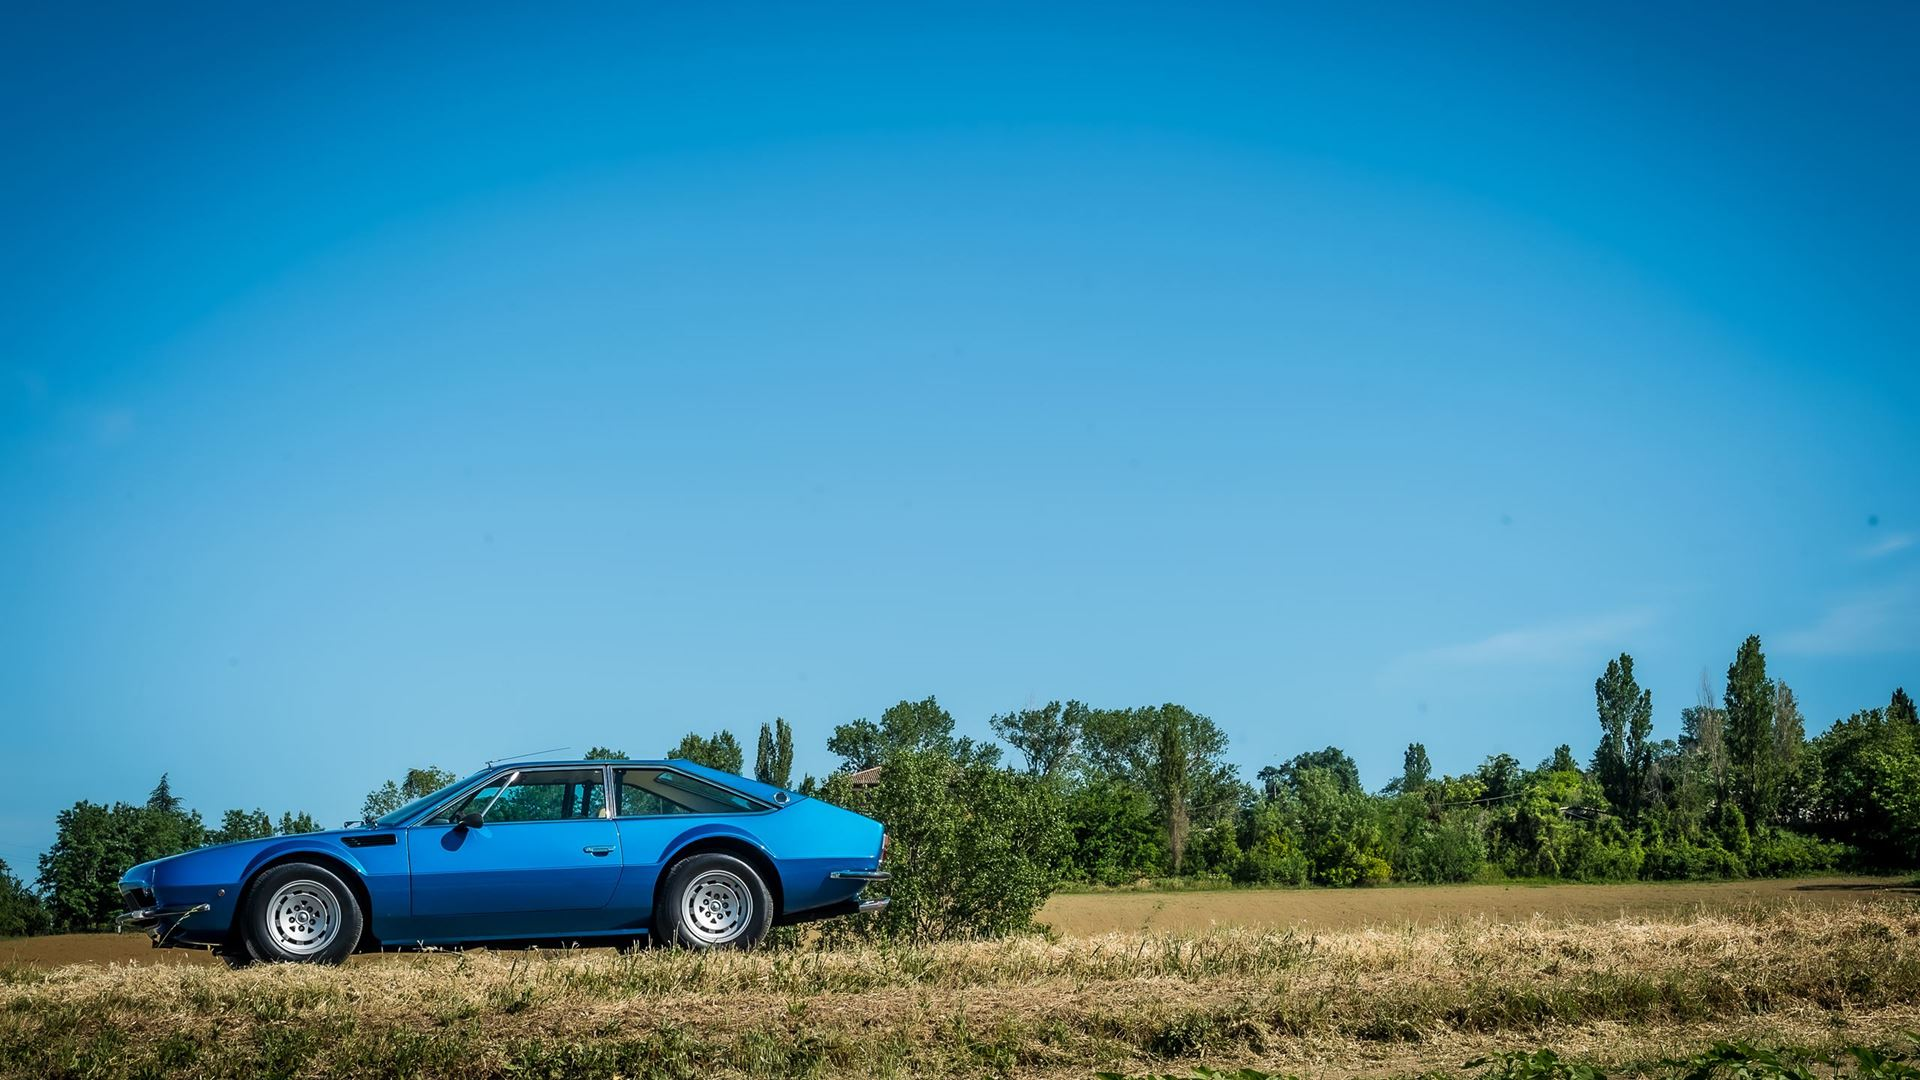 Lamborghini celebrates the 50th Anniversary of the Jarama GT - Image 4